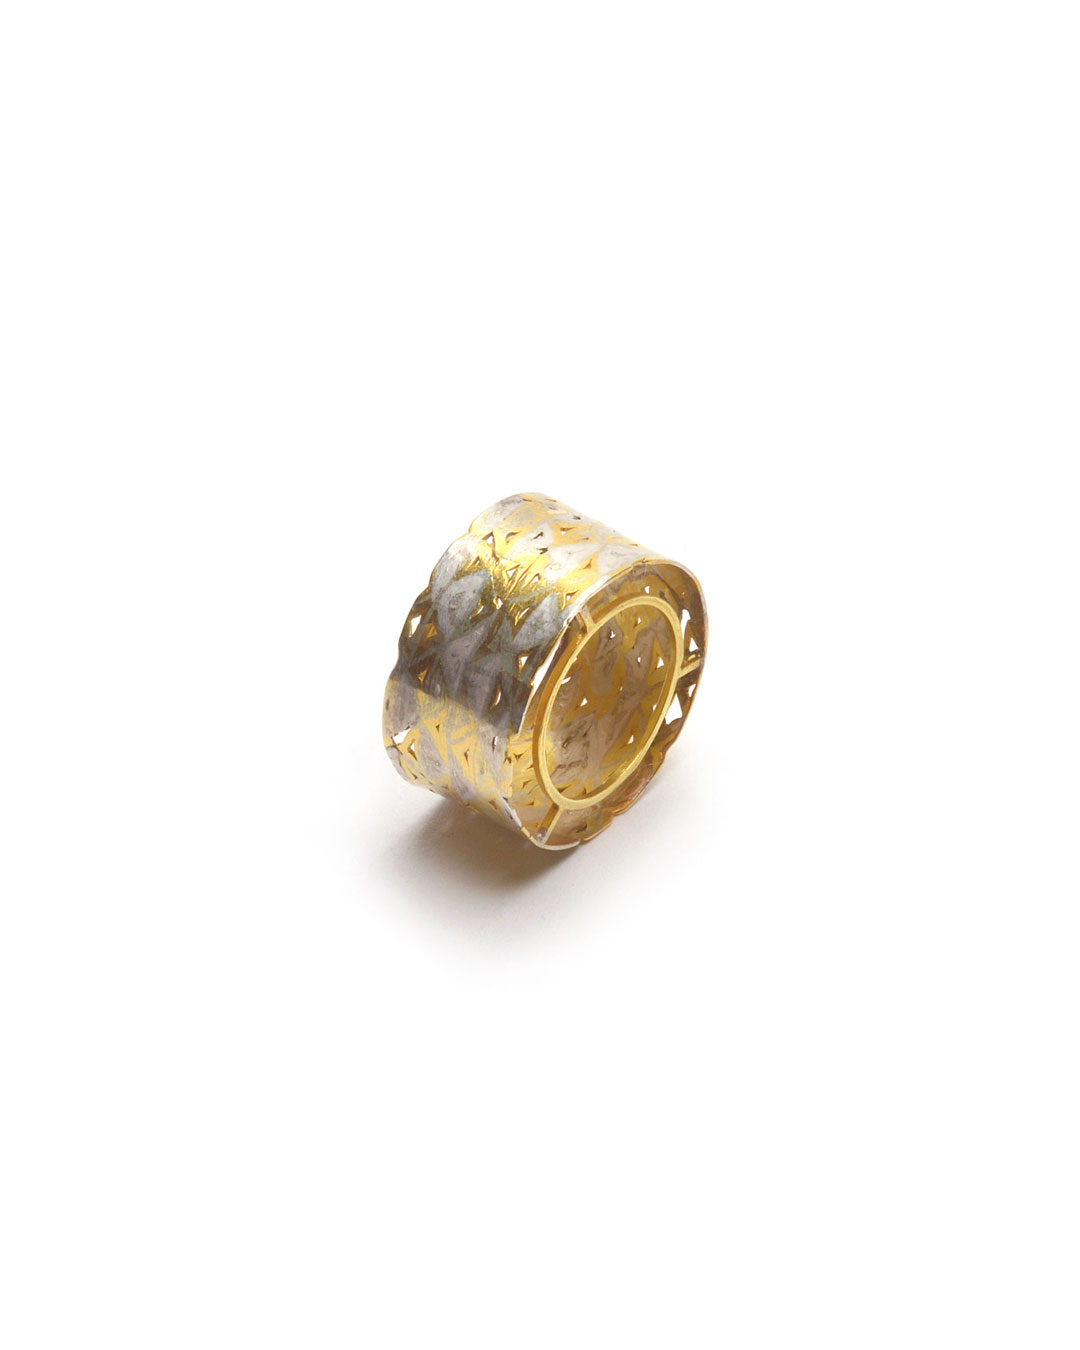 Stefano Marchetti, untitled, 2015, ring; gold, silver, 28 x 28 x 15 mm, €4000